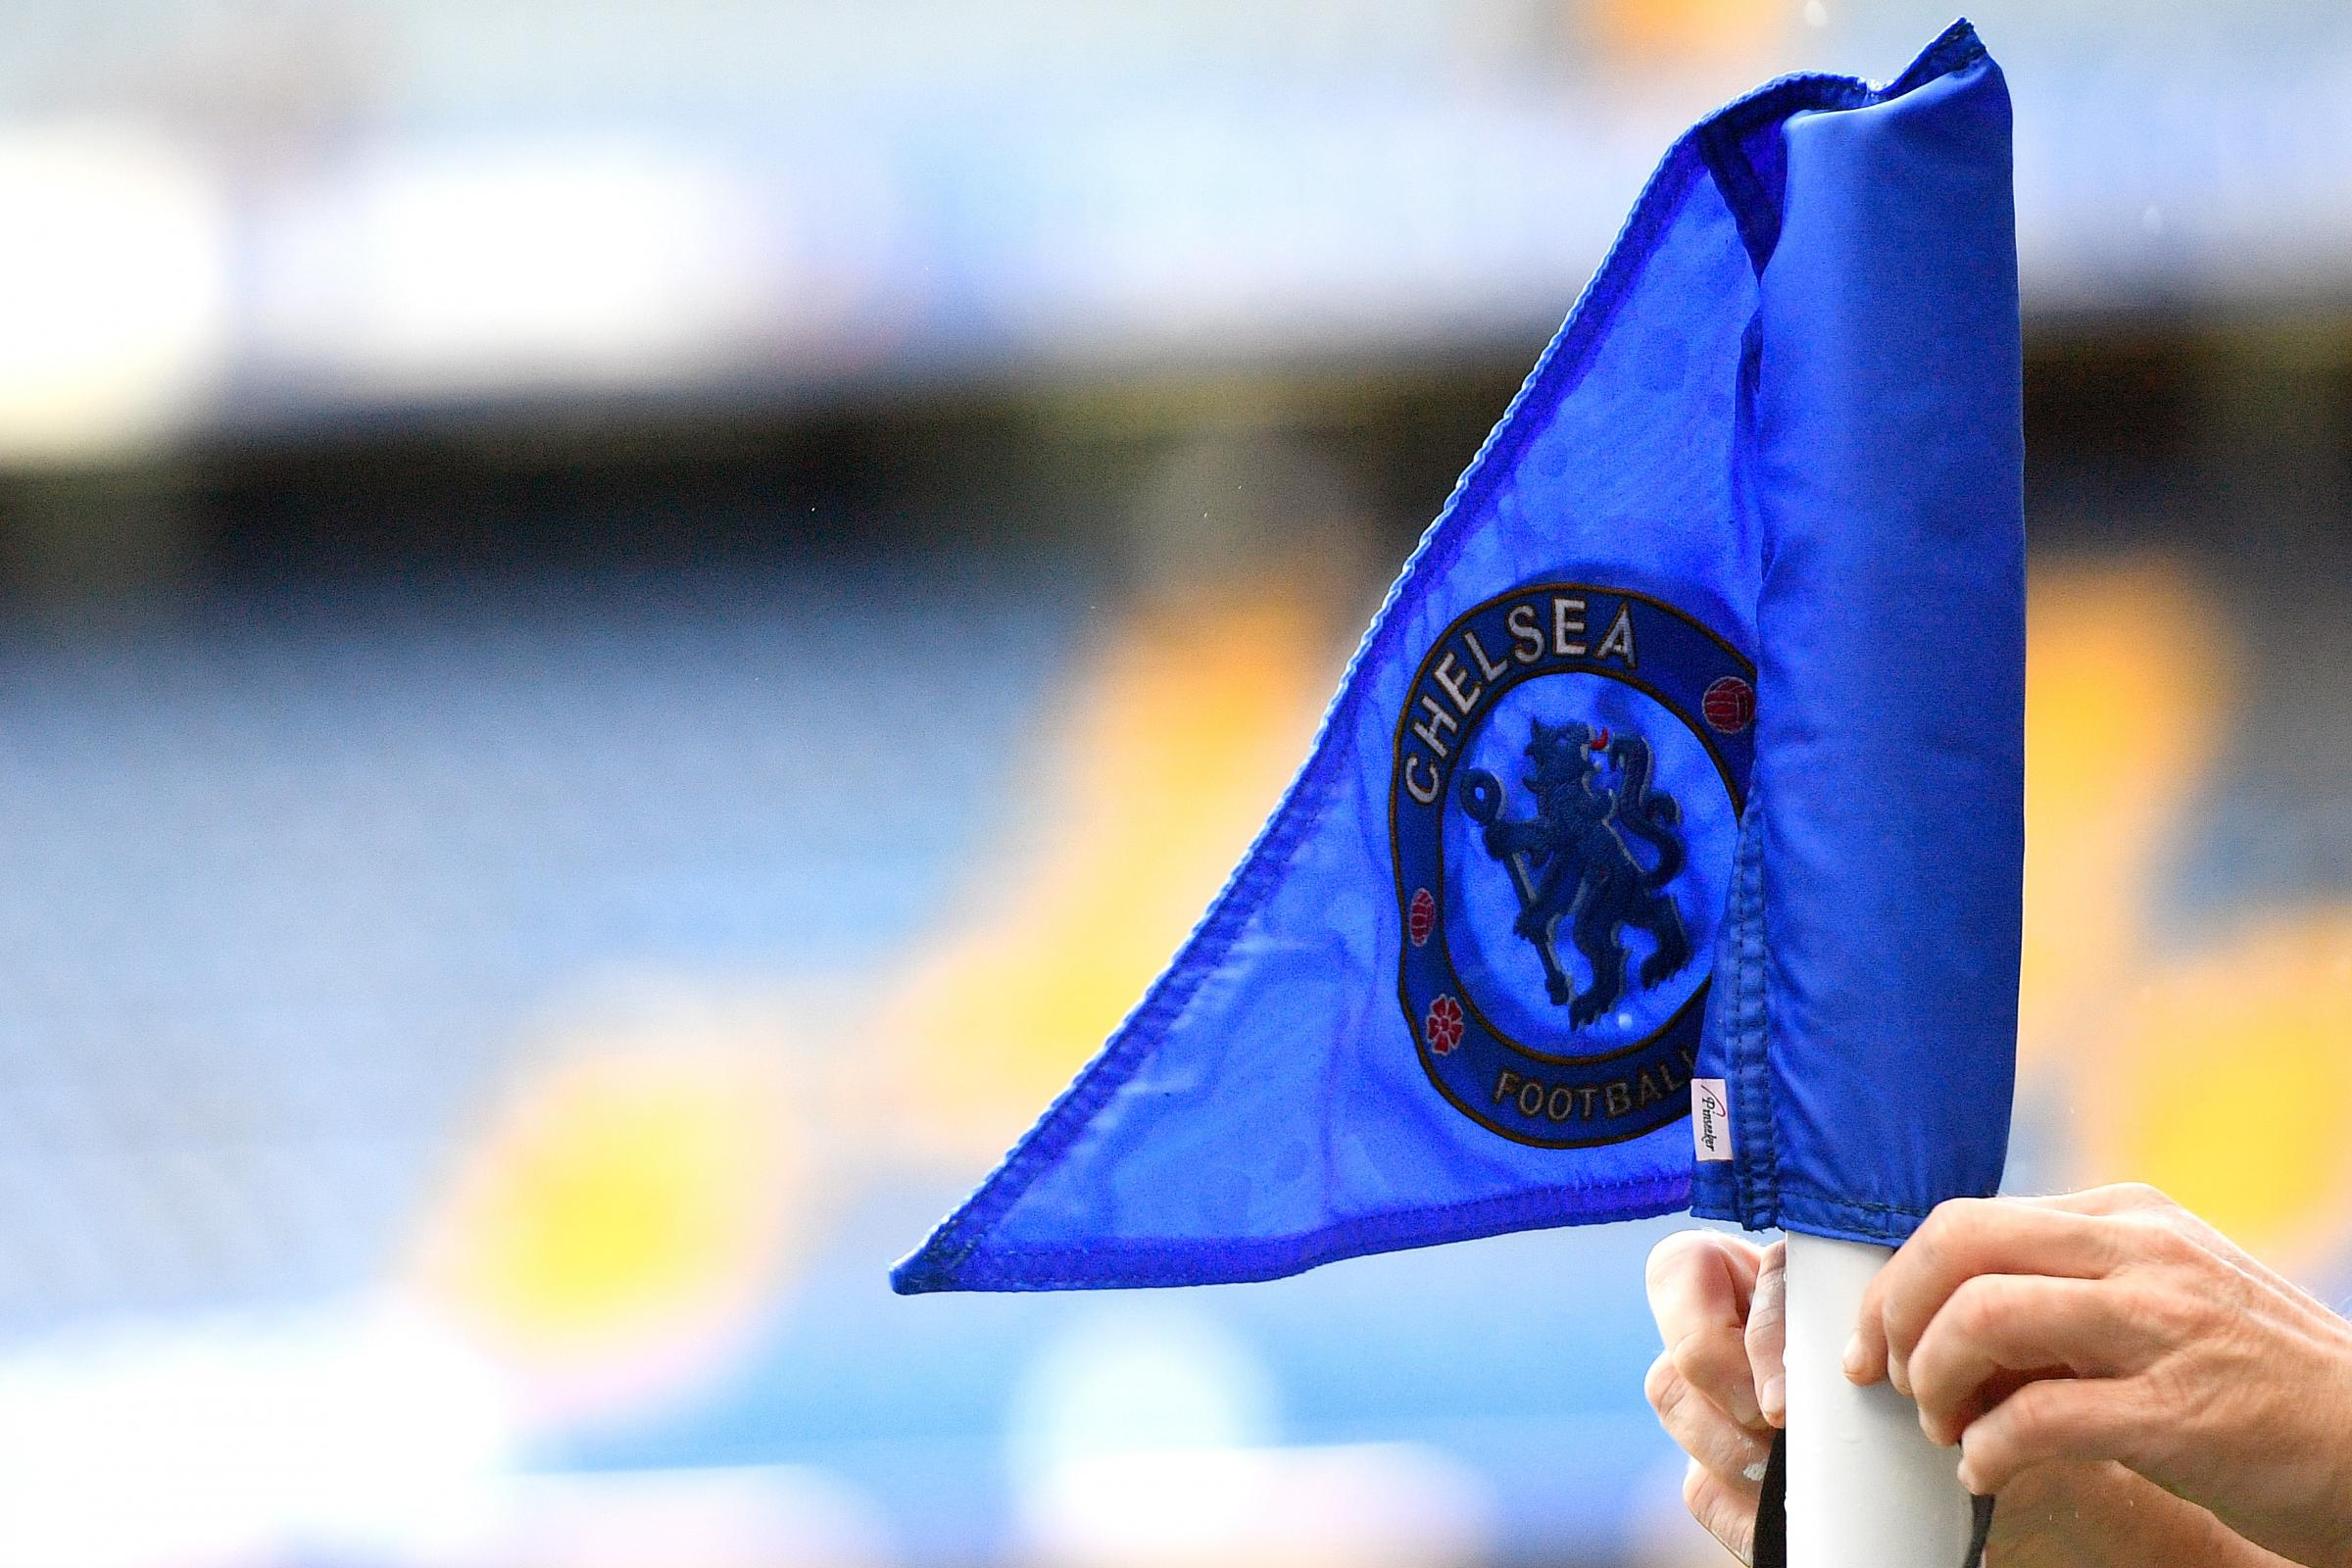 Chelsea have promised action